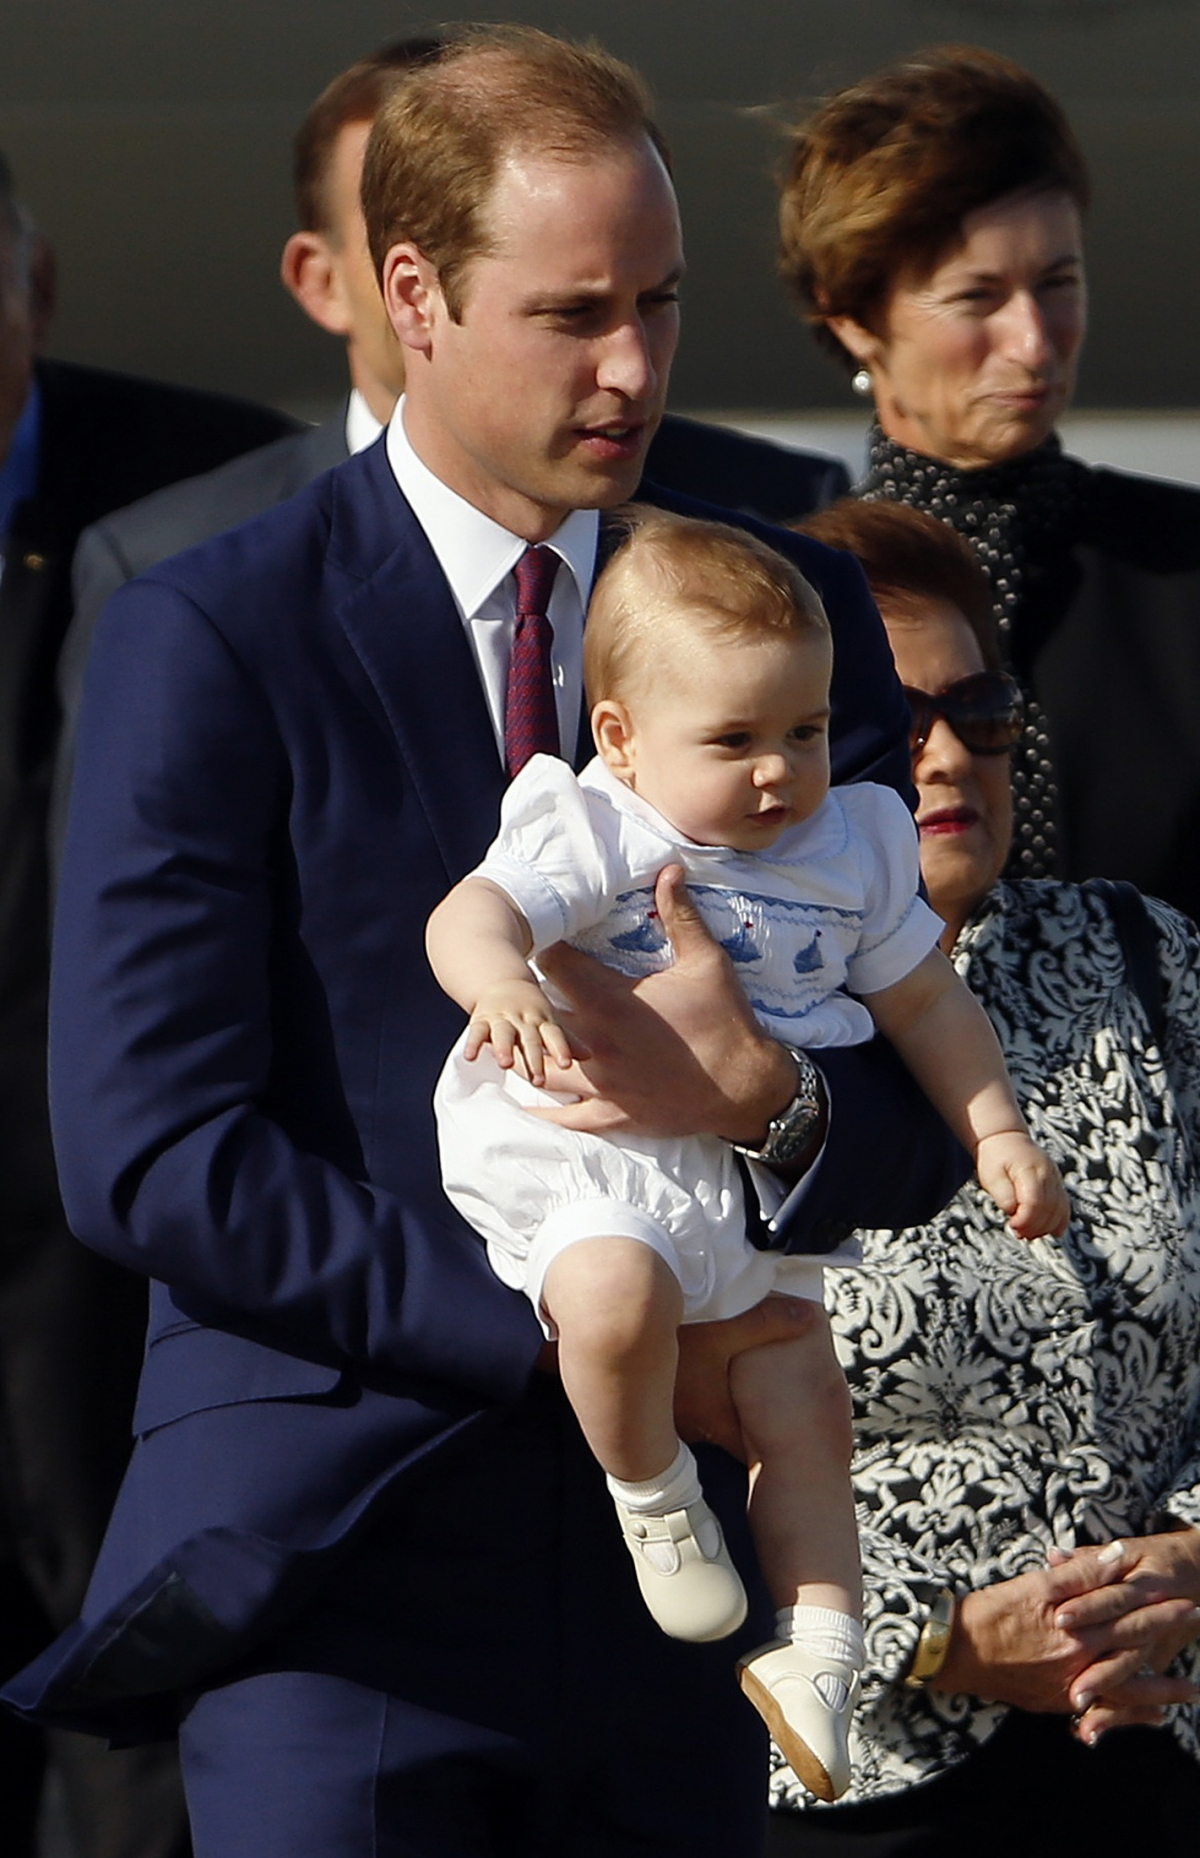 Prince William carries his son Prince George next to officials as he arrives with his wife Catherine, the Duchess of Cambridge, at Sydney Airport April 16, 2014.